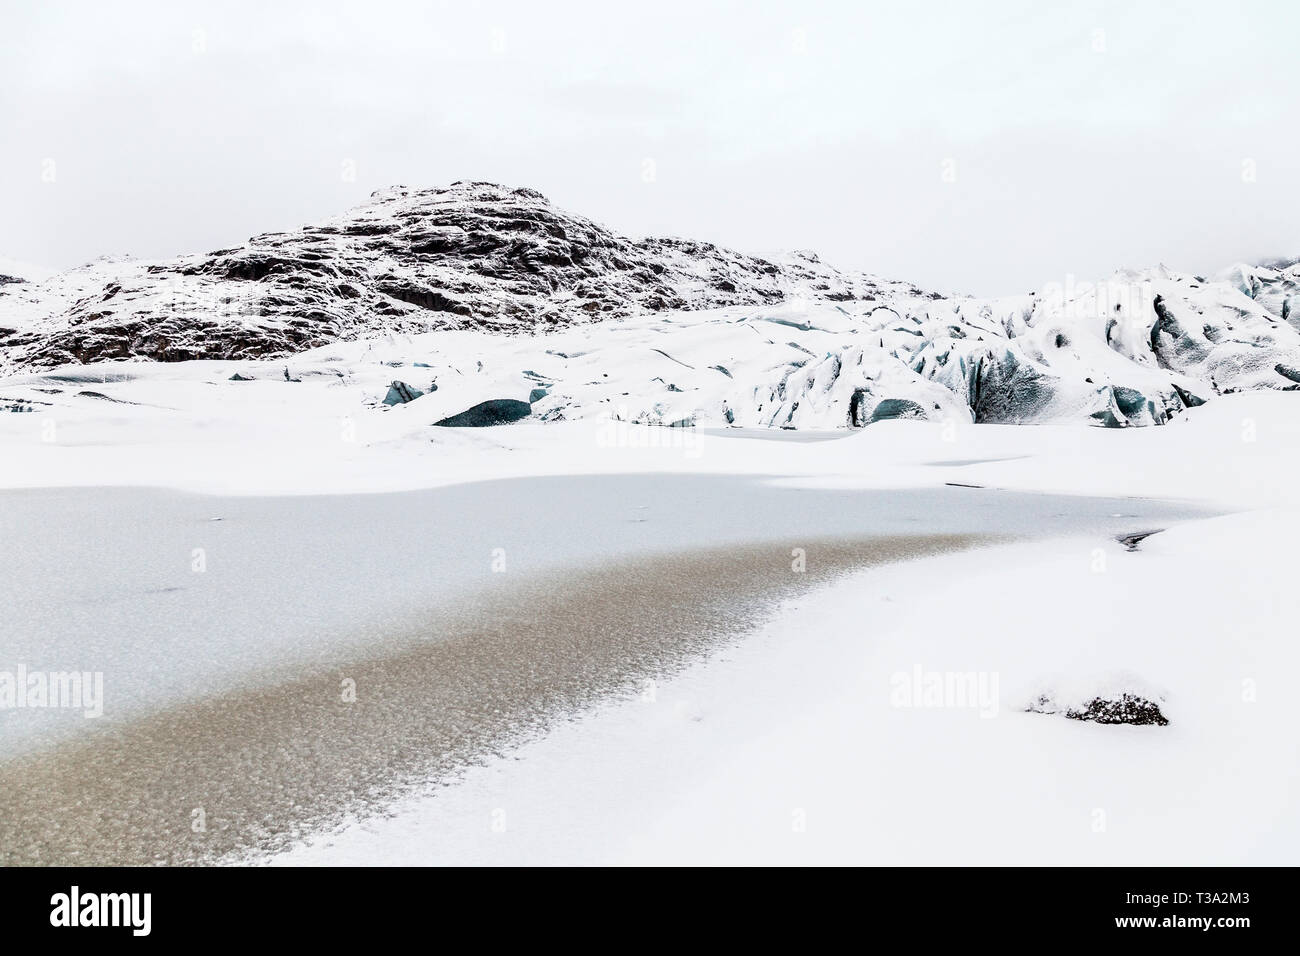 Solheimajokull Glacier covered with snow, Iceland - Stock Image